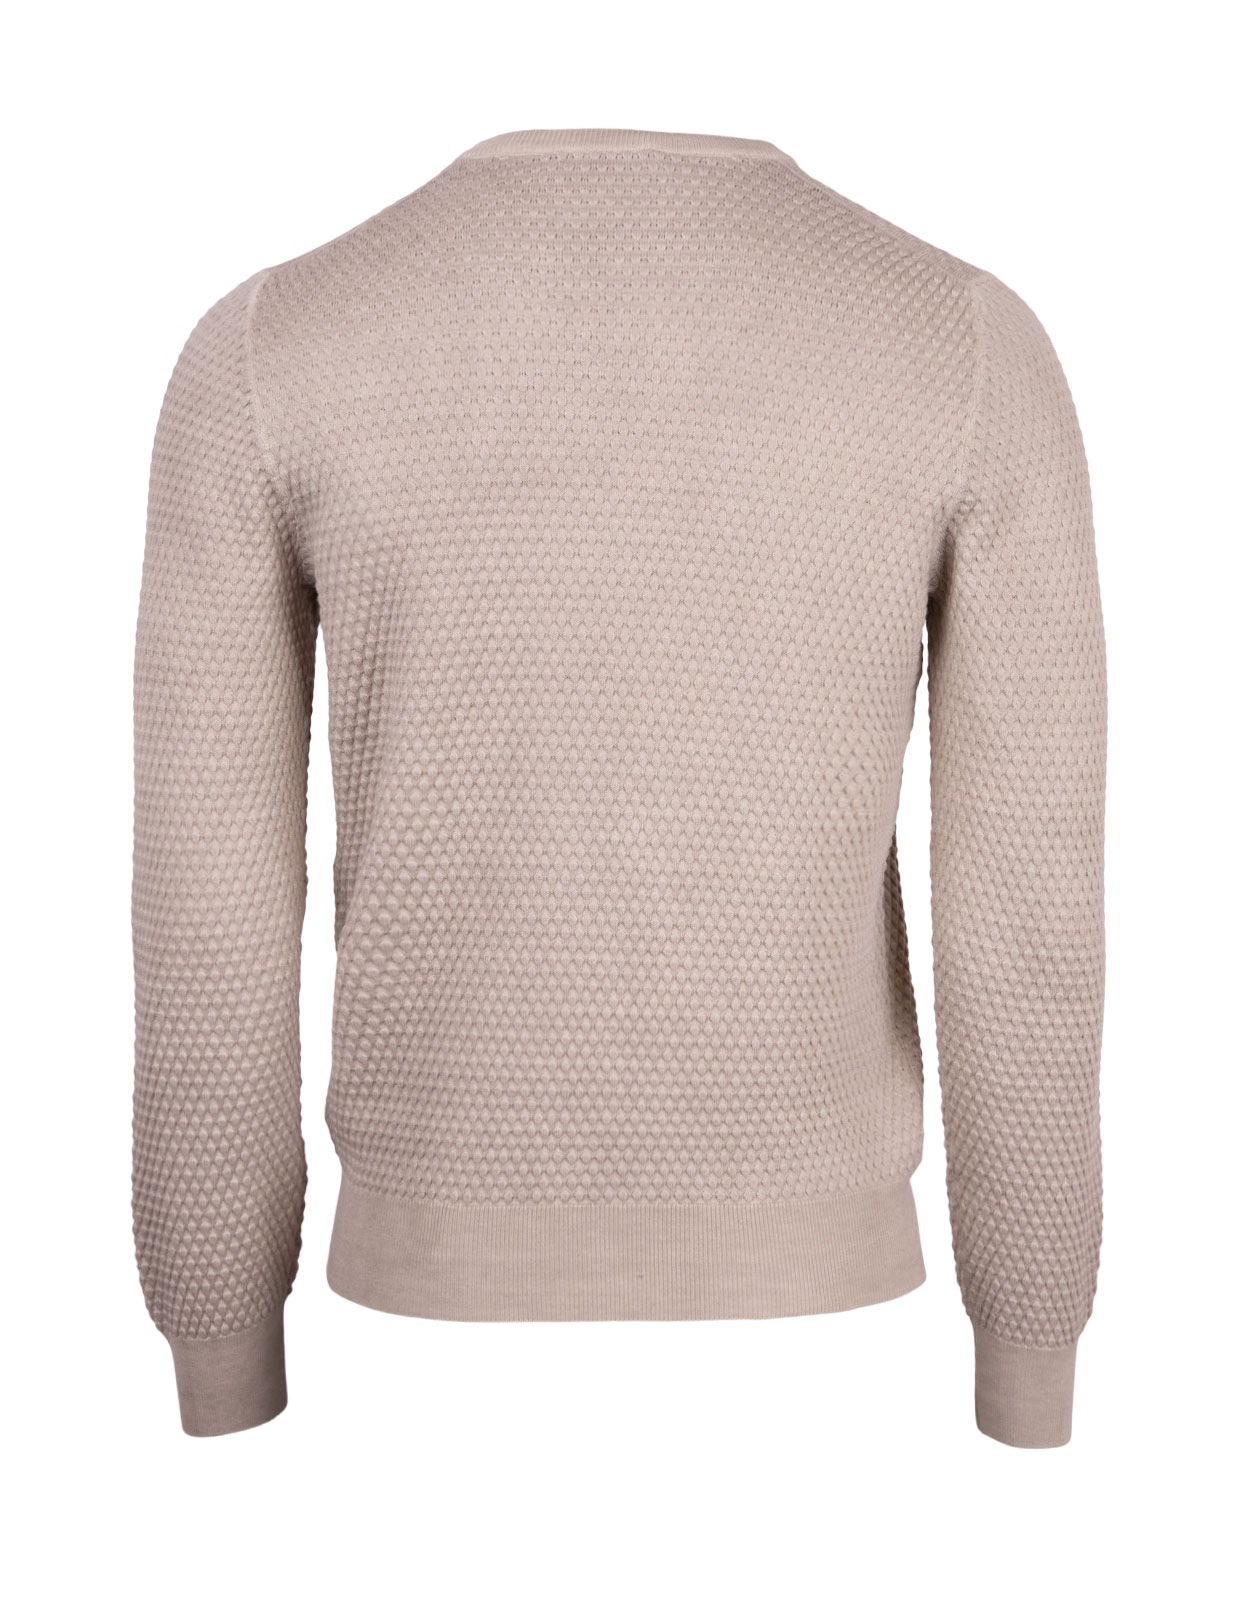 Crew Neck Tröja Knitted Texture Cotton Cream